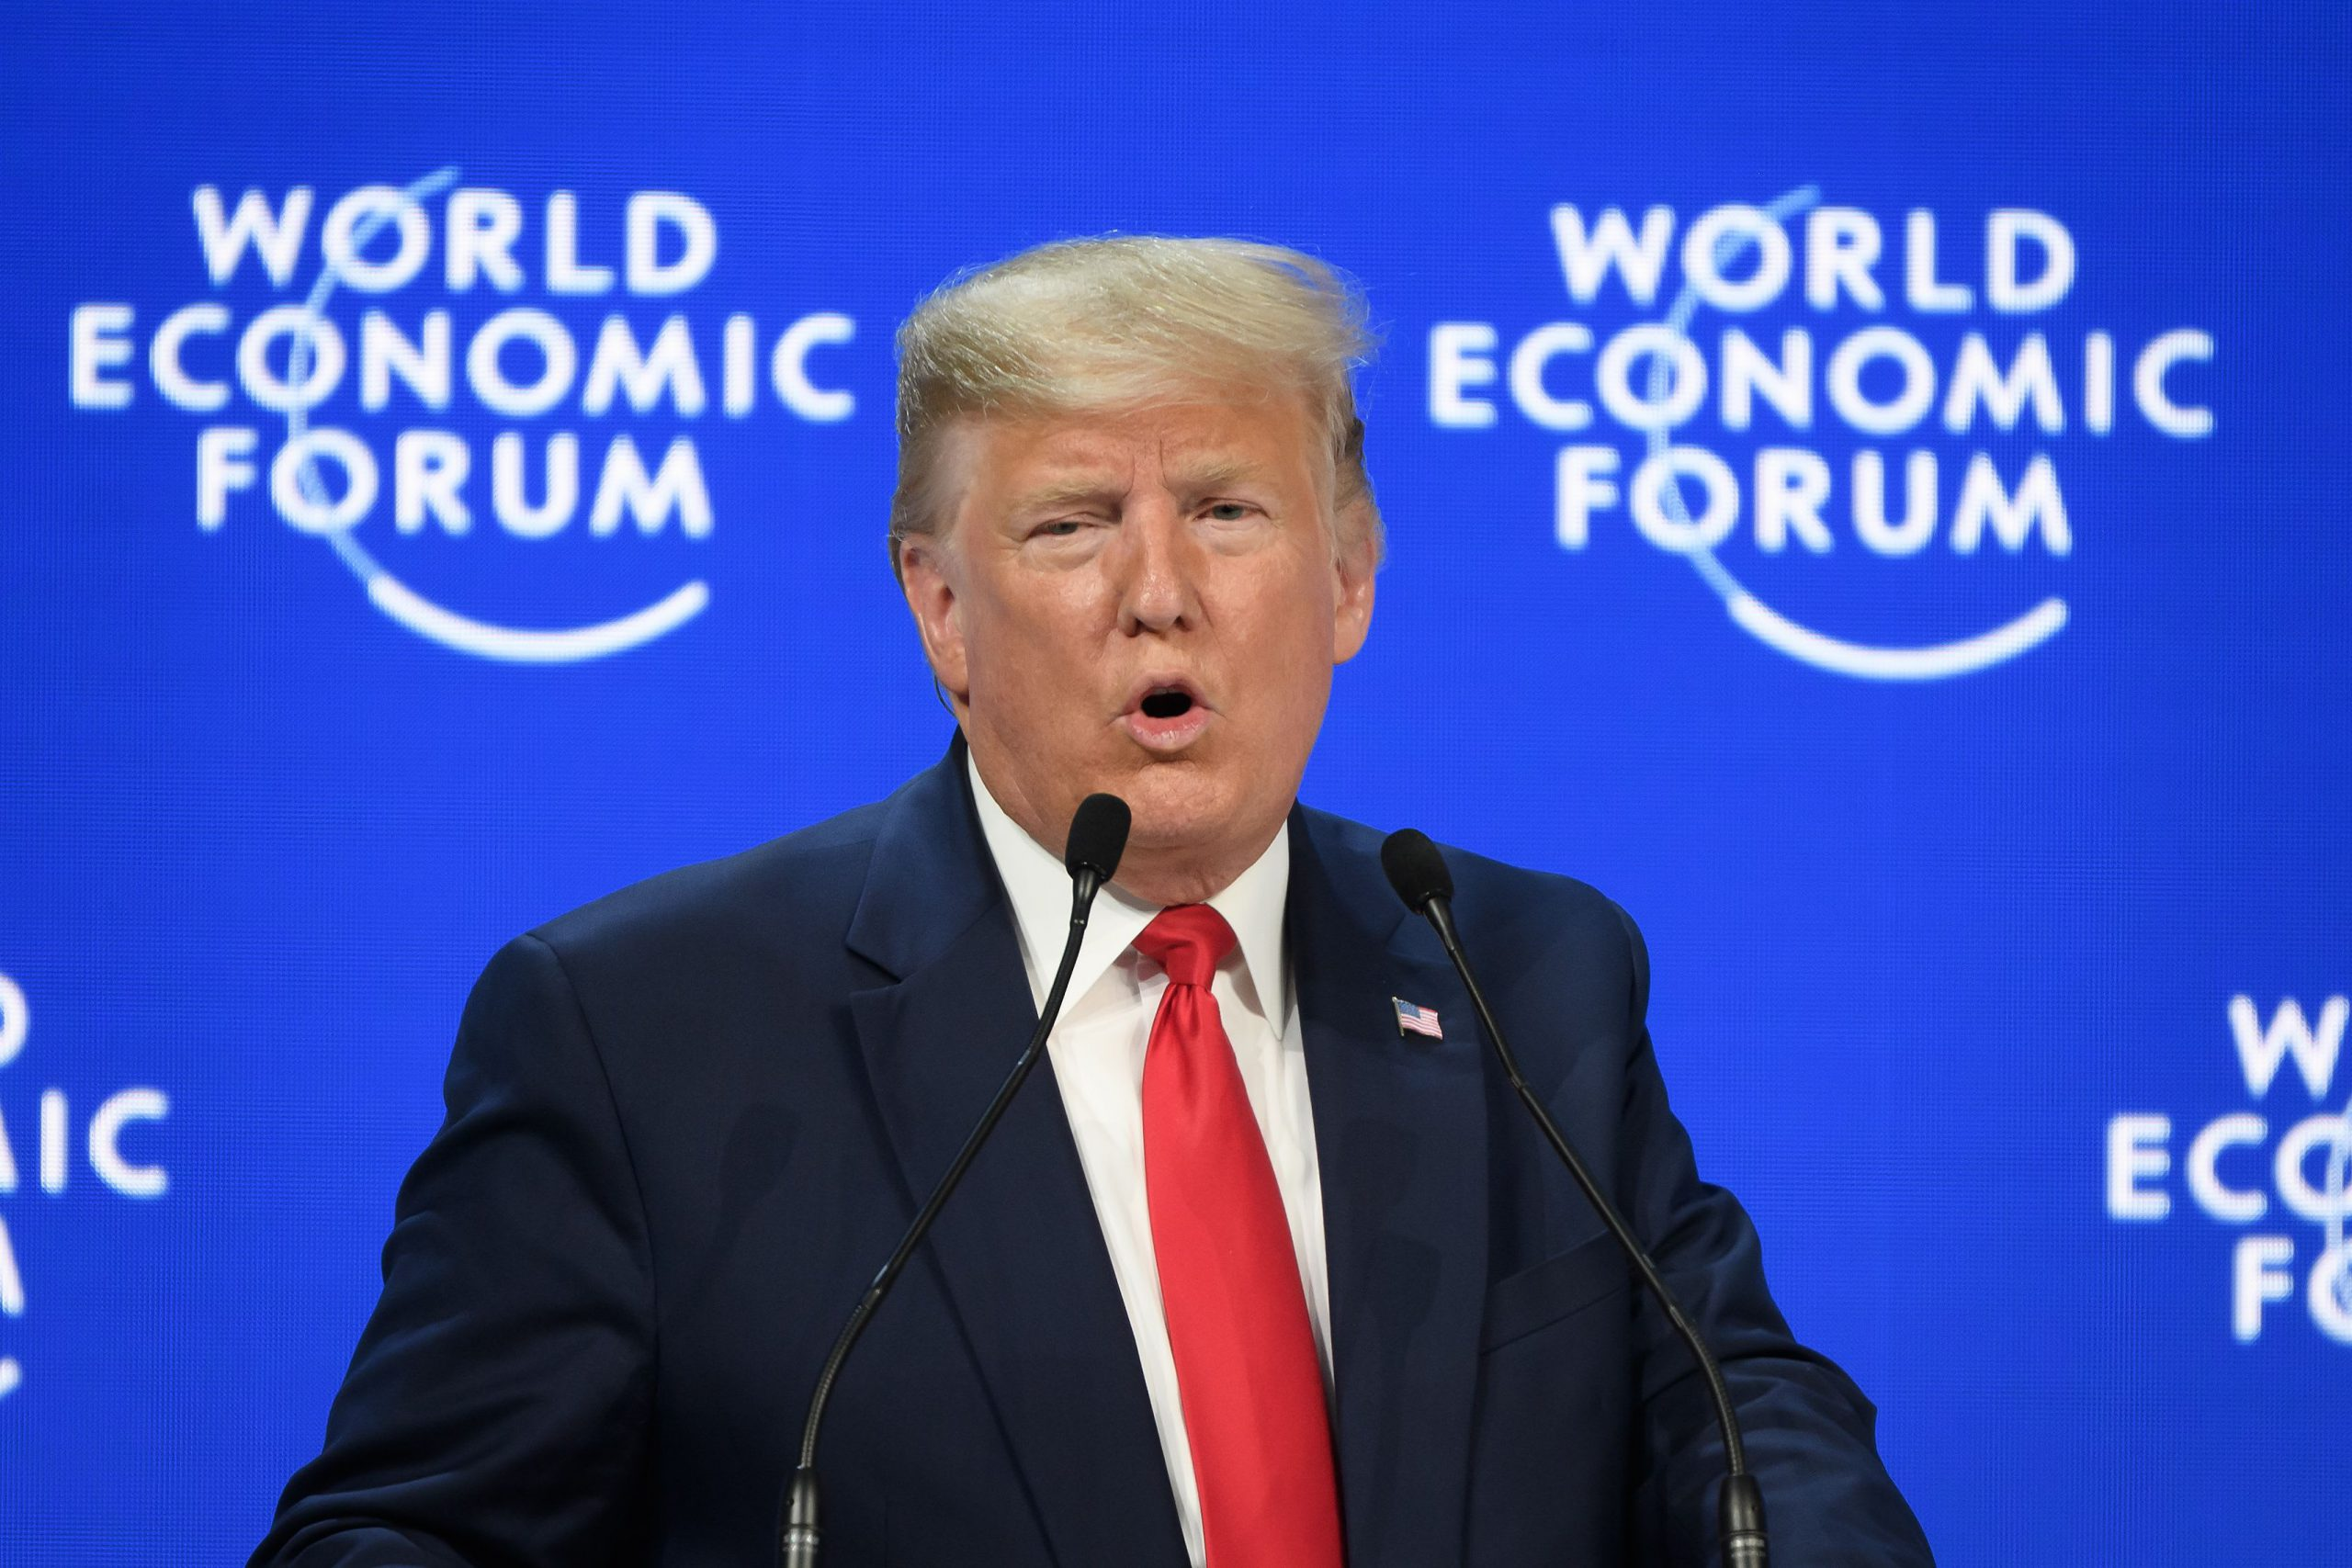 A 'pre-election speech': Attendees react to Trump's Davos address